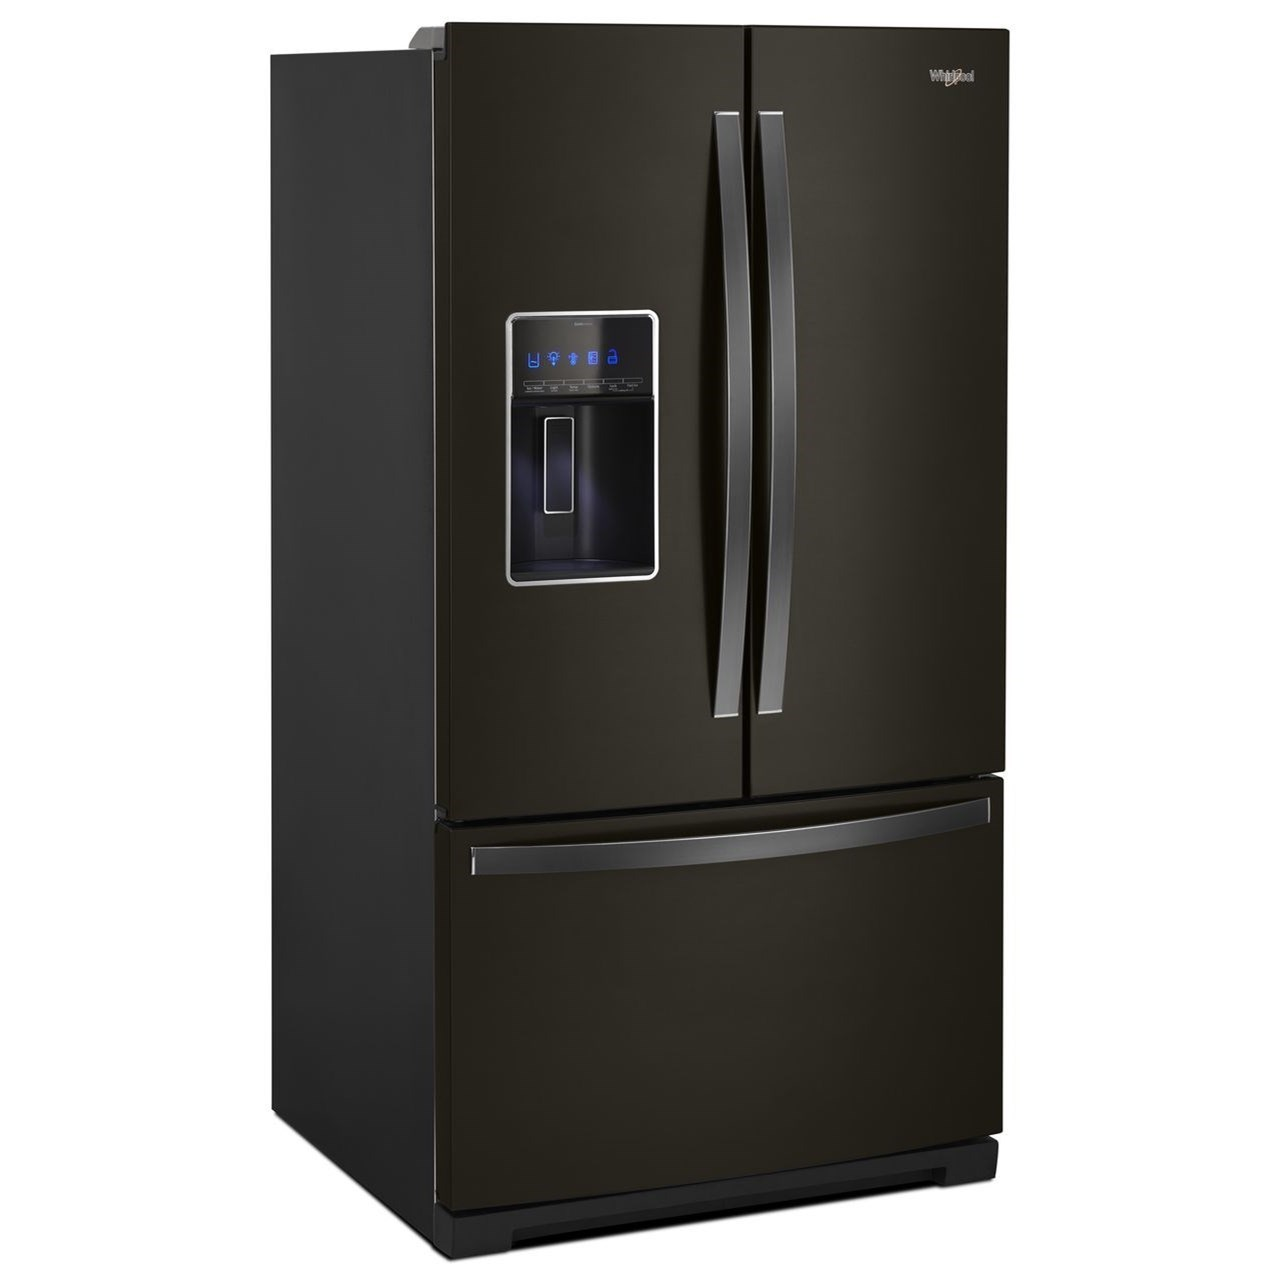 French Door Refrigerators 27 Cu. Ft. French Door Refrigerator by Whirlpool at Wilcox Furniture